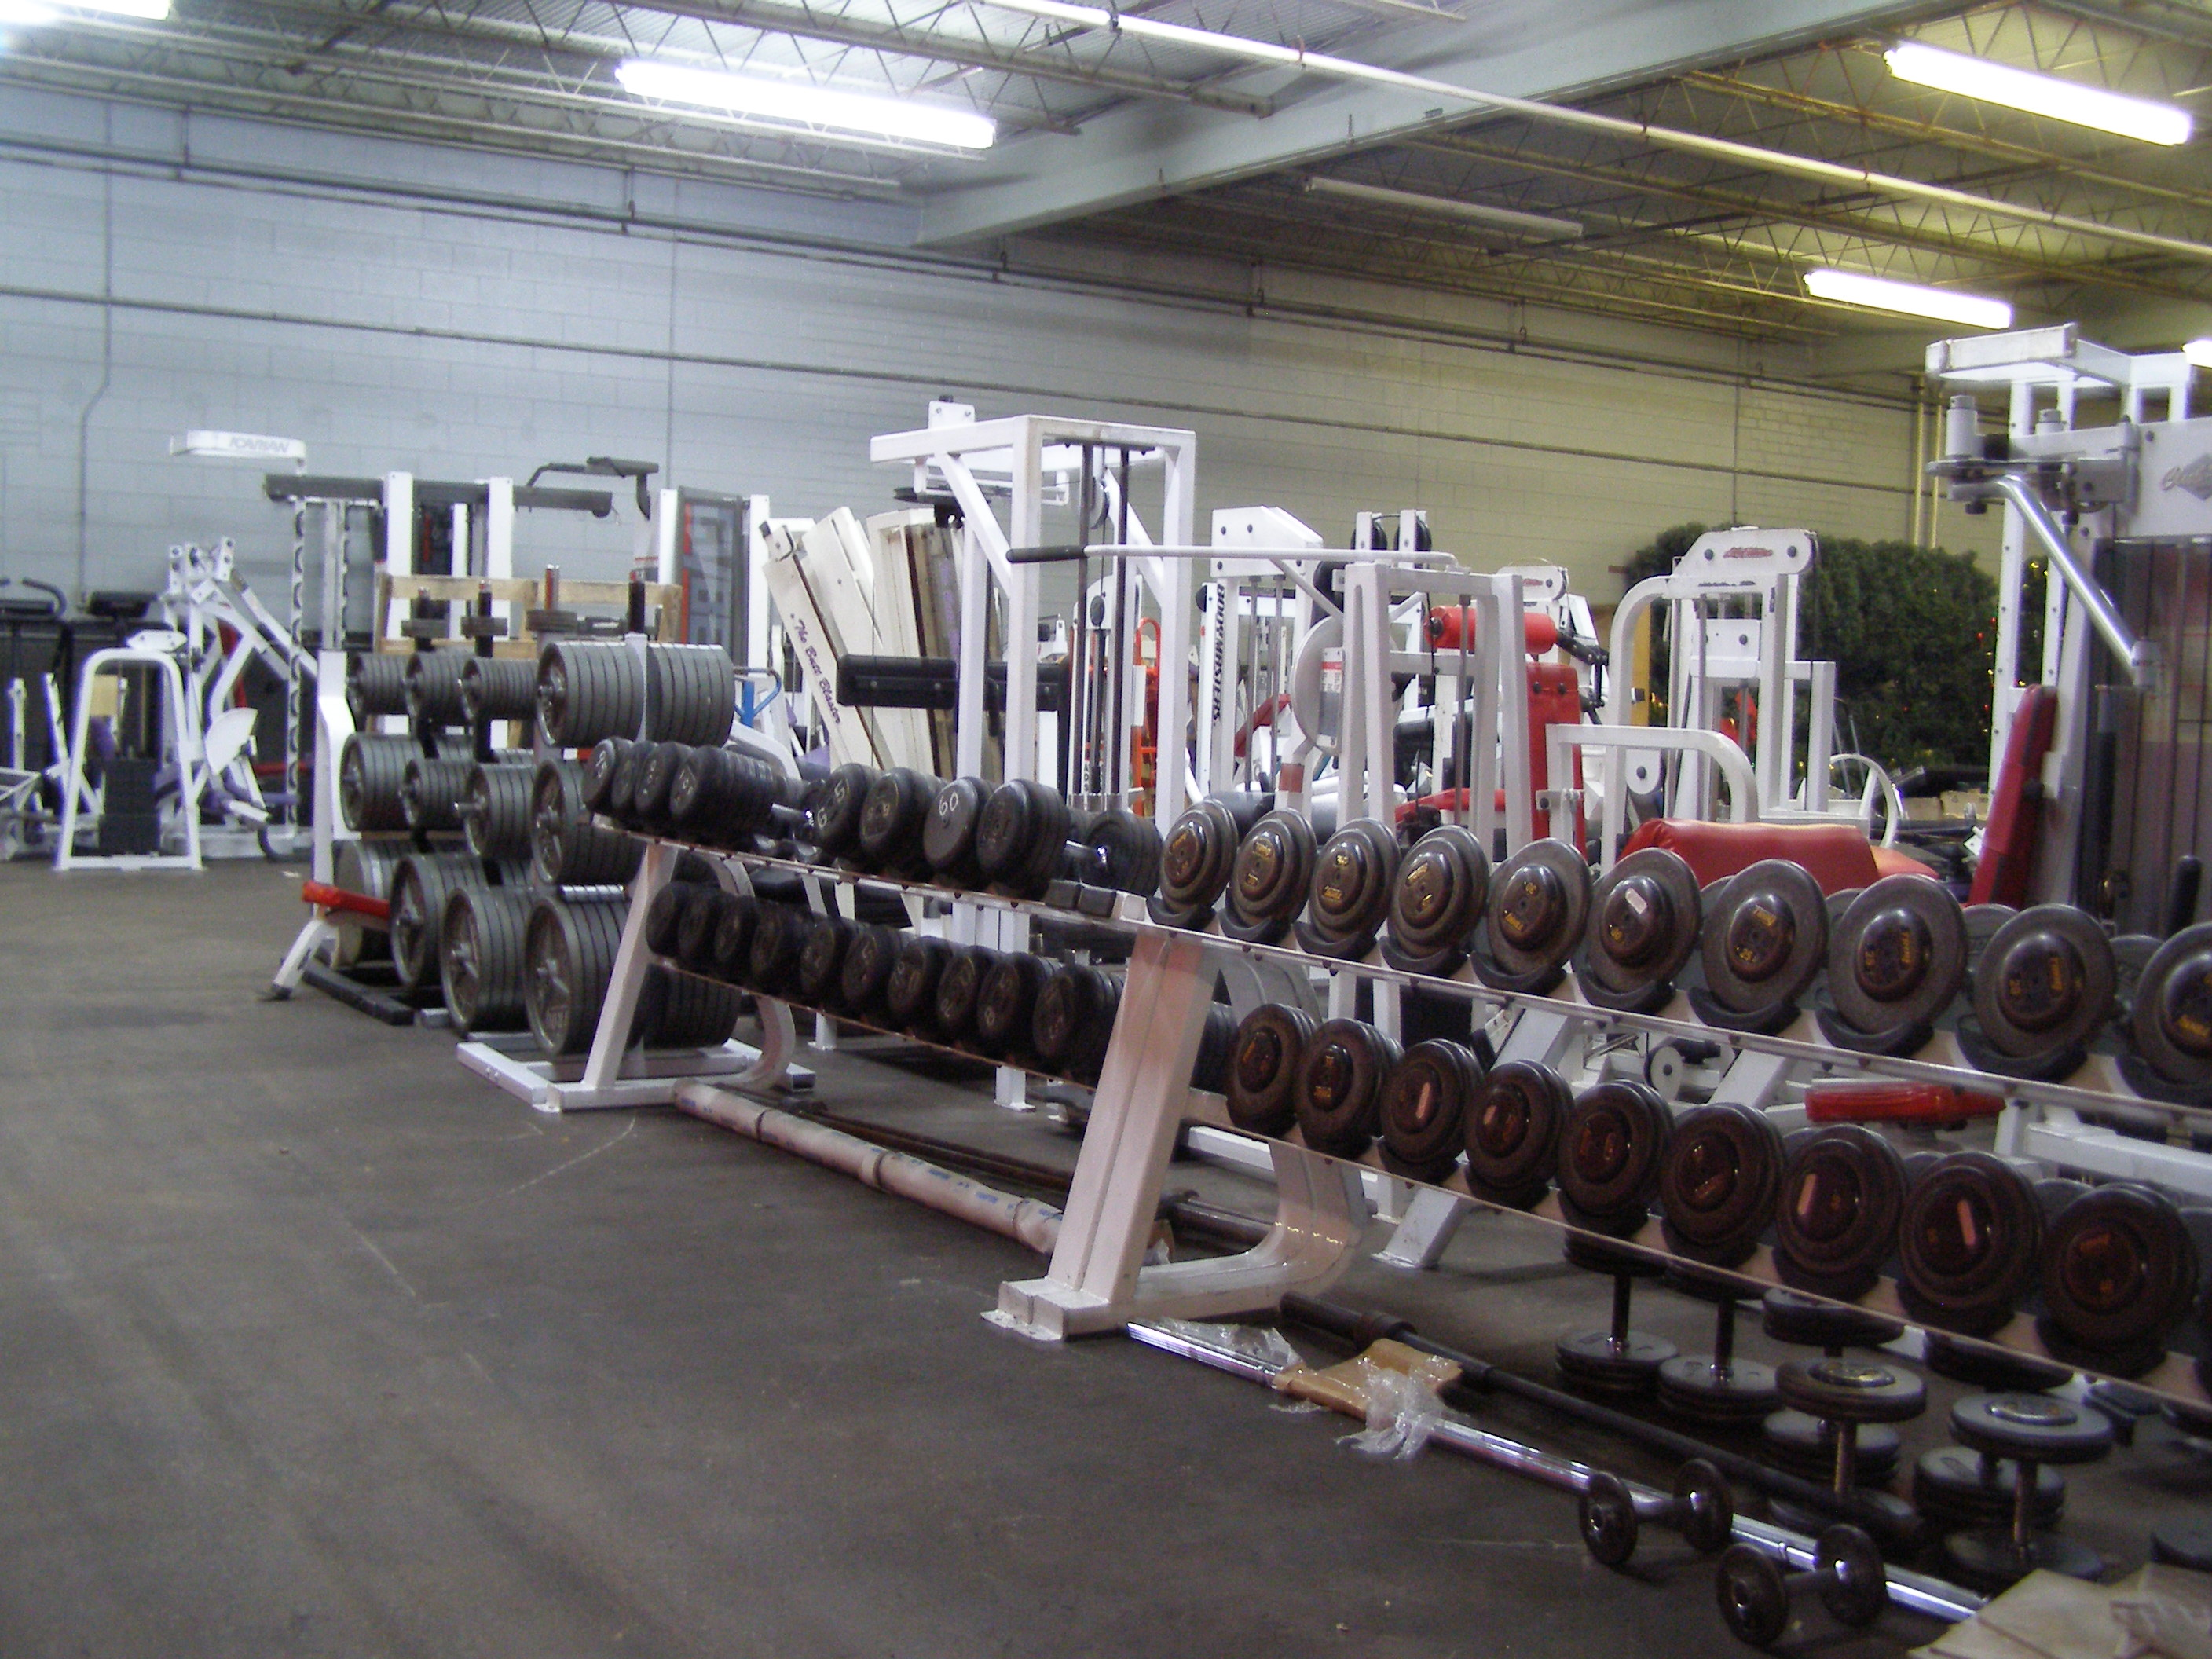 Used exercise equipment for sale happy memorial day